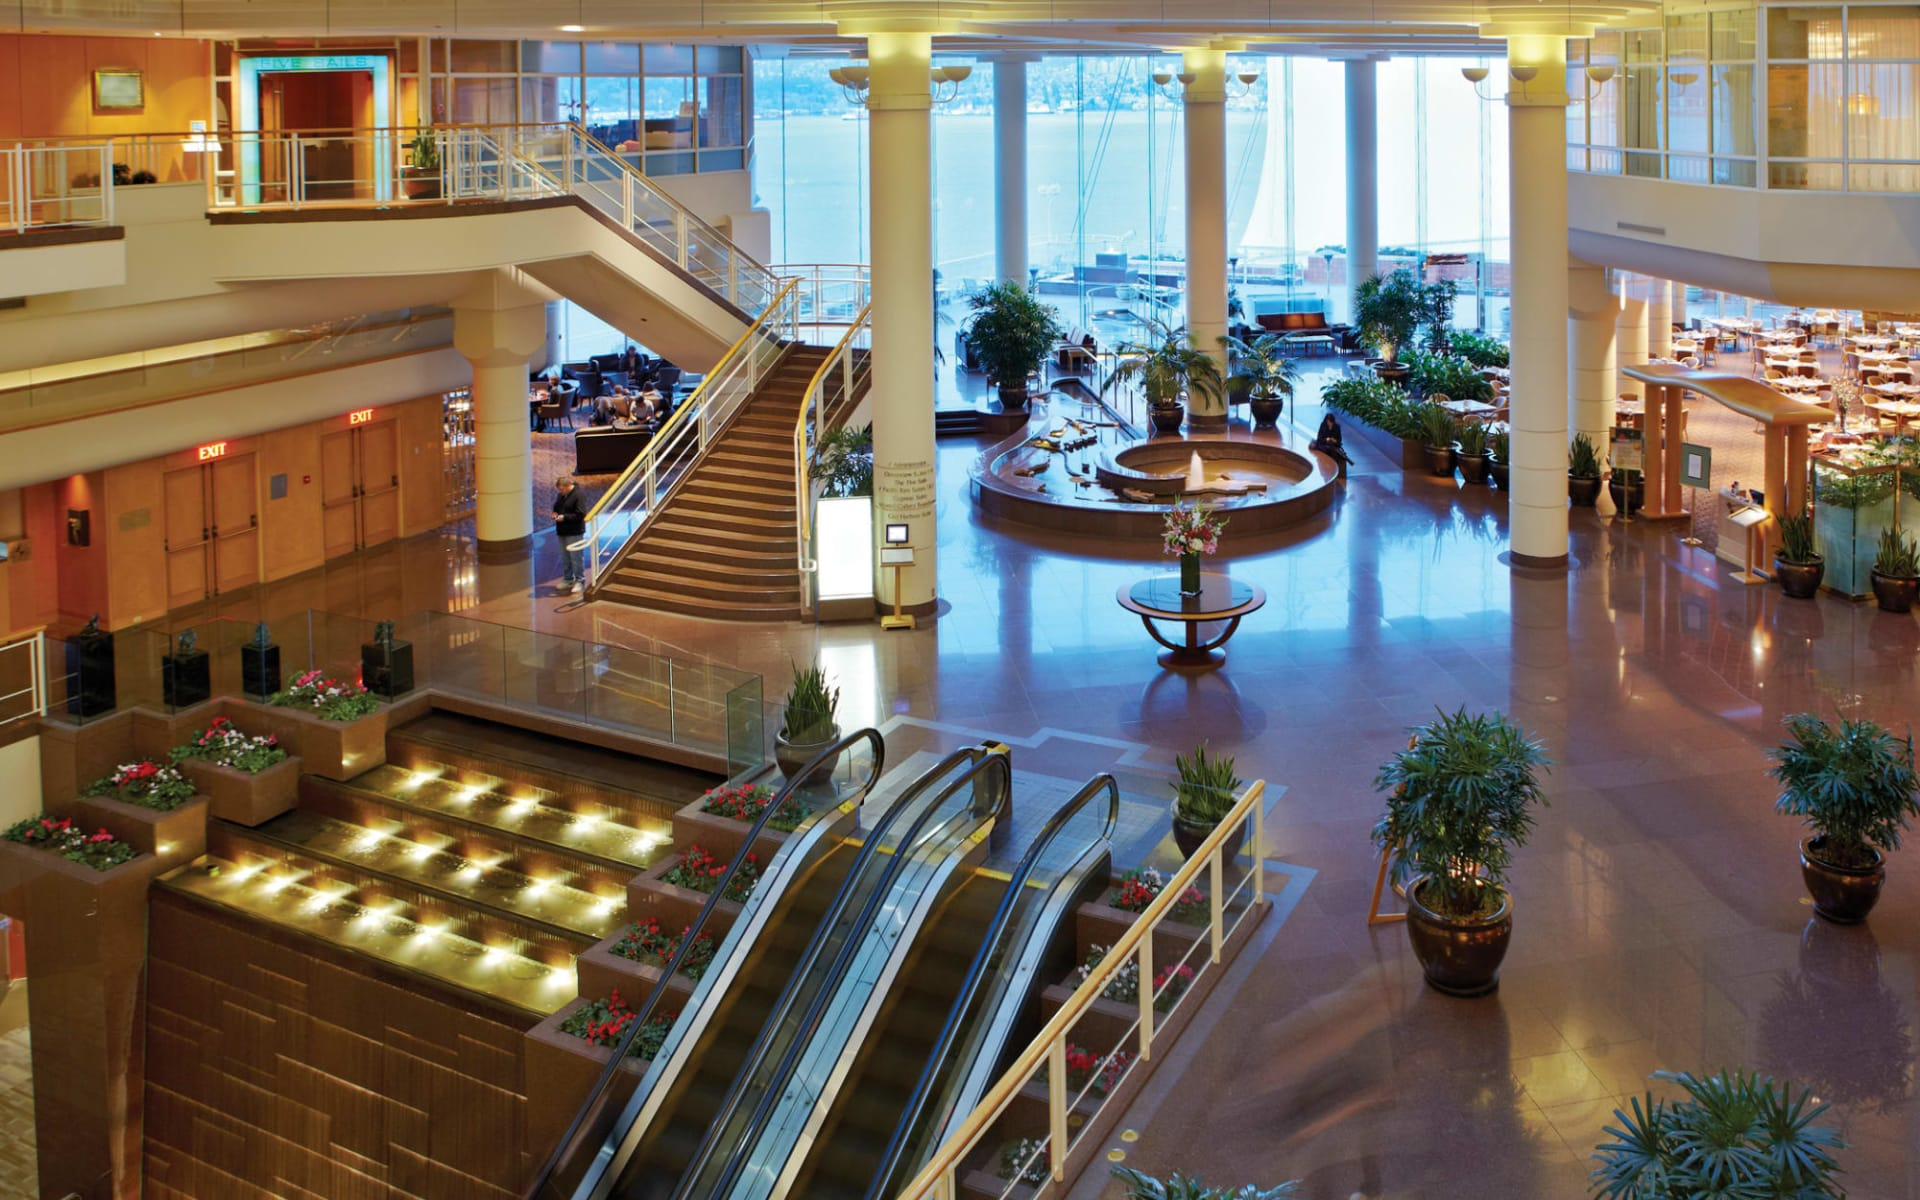 Pan Pacific in Vancouver: facilities_Pan Pacific_Lobby